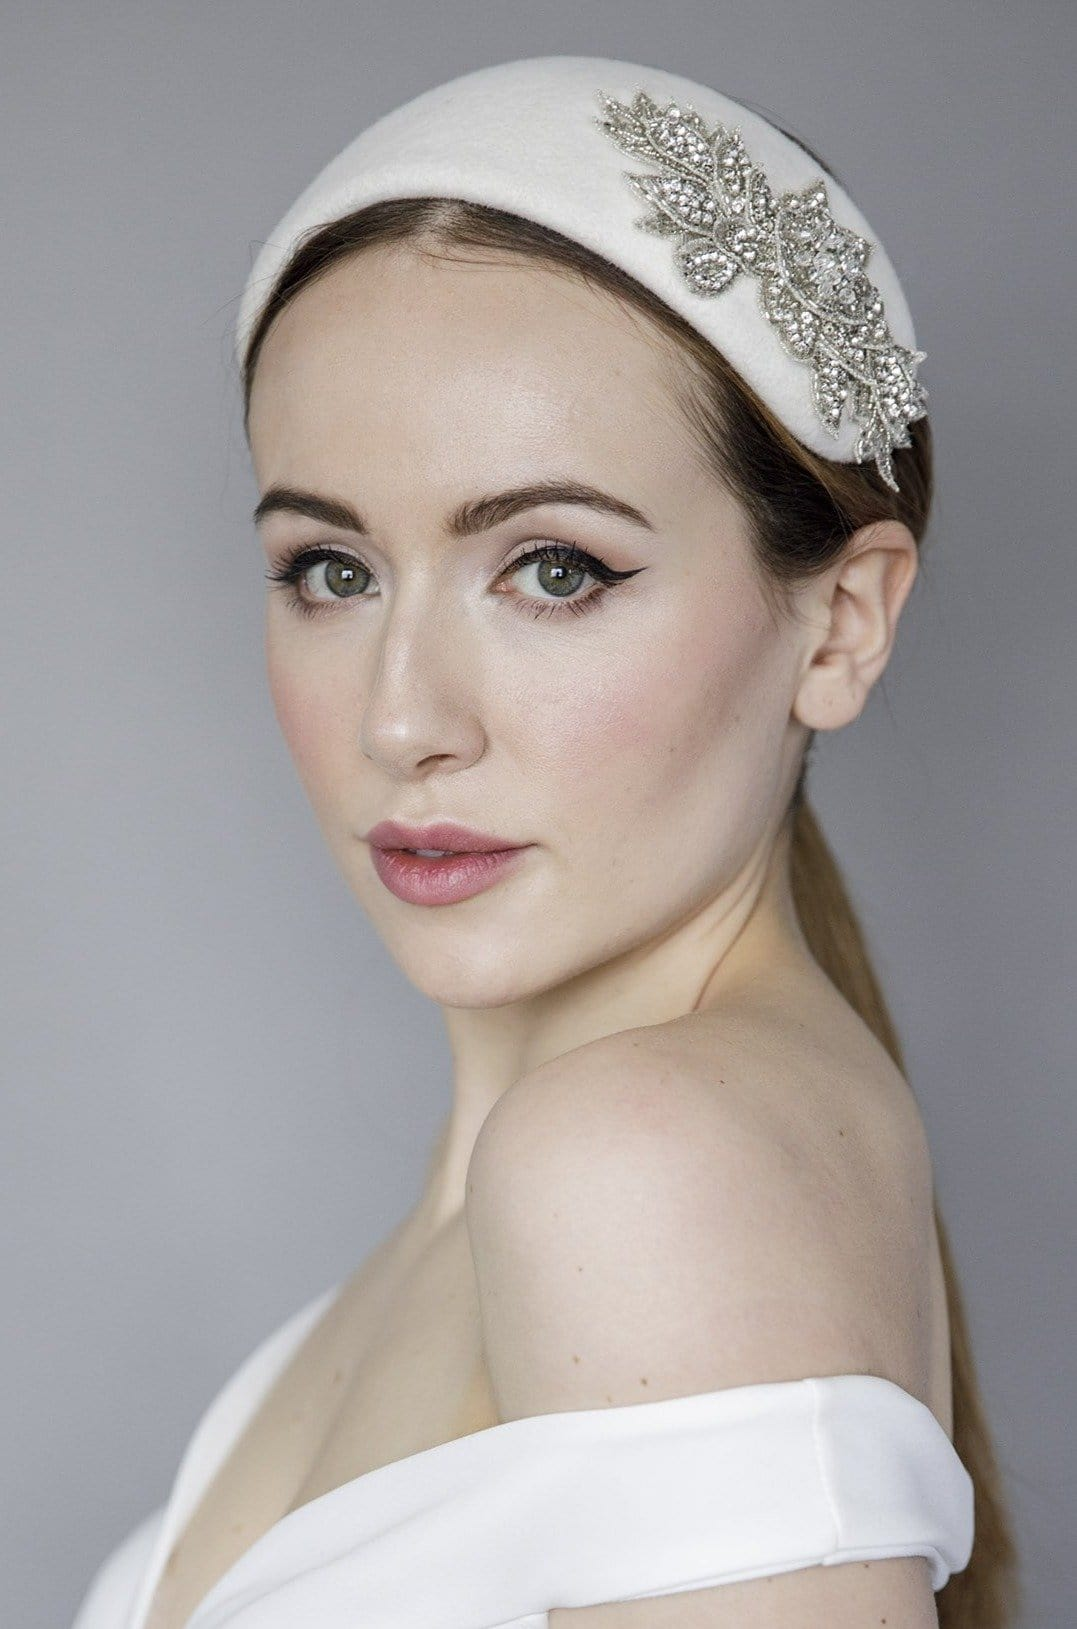 Felt Wedding Headband - Elanor - Maggie Mowbray Millinery